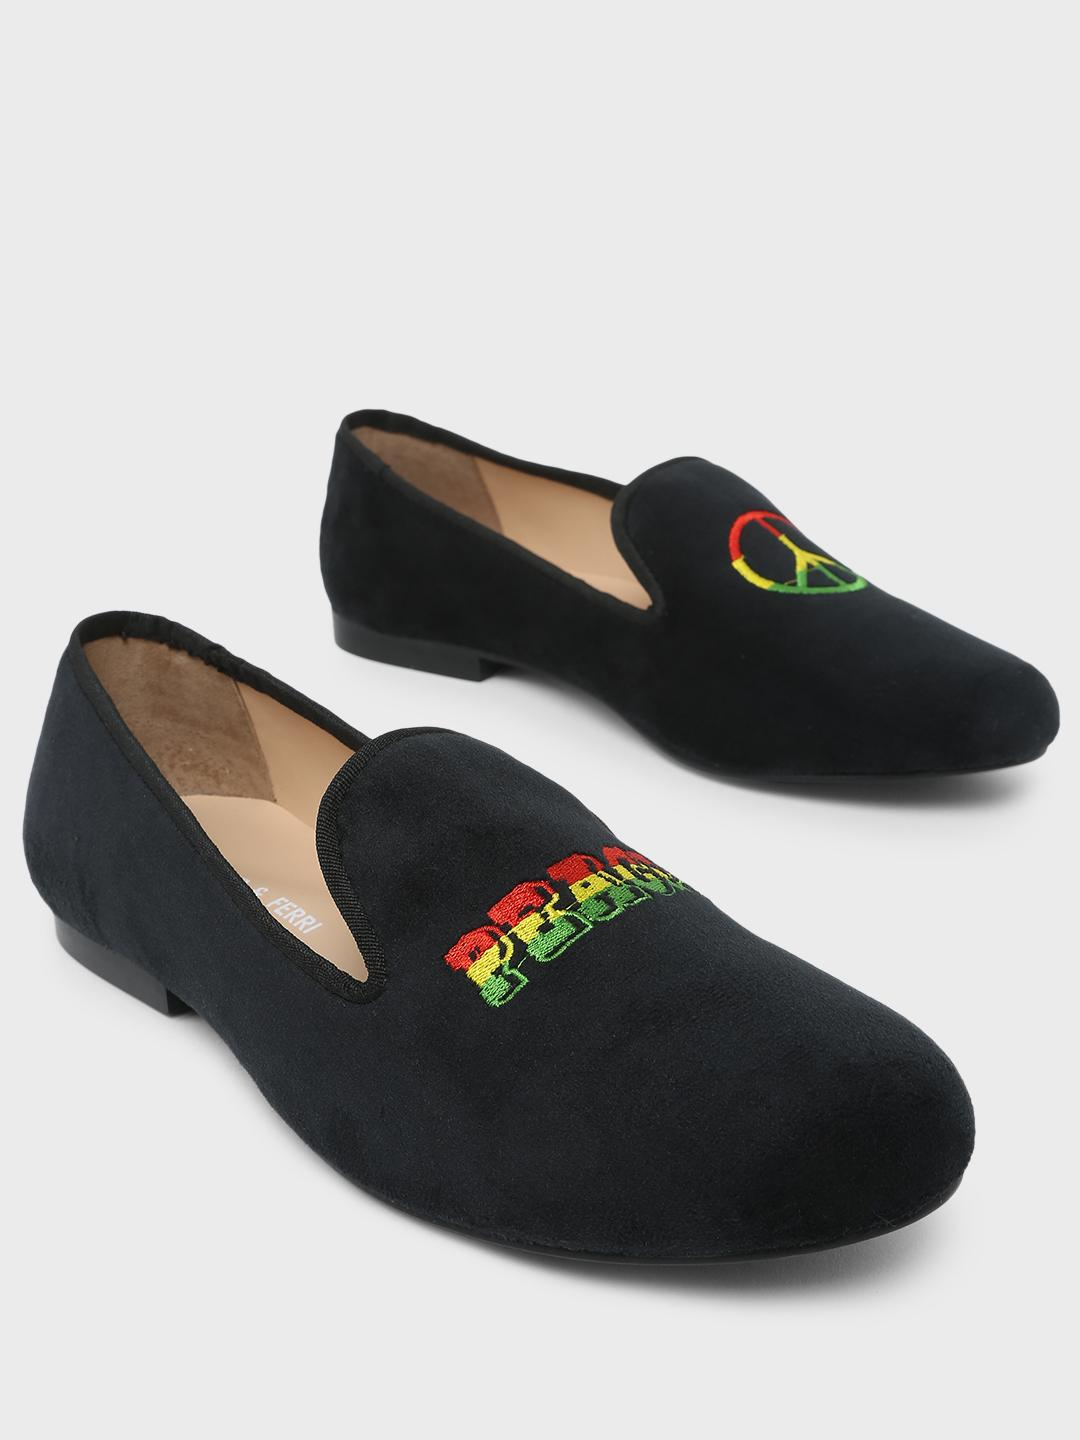 Marcello & Ferri Black Peace Embroidered Loafers 1